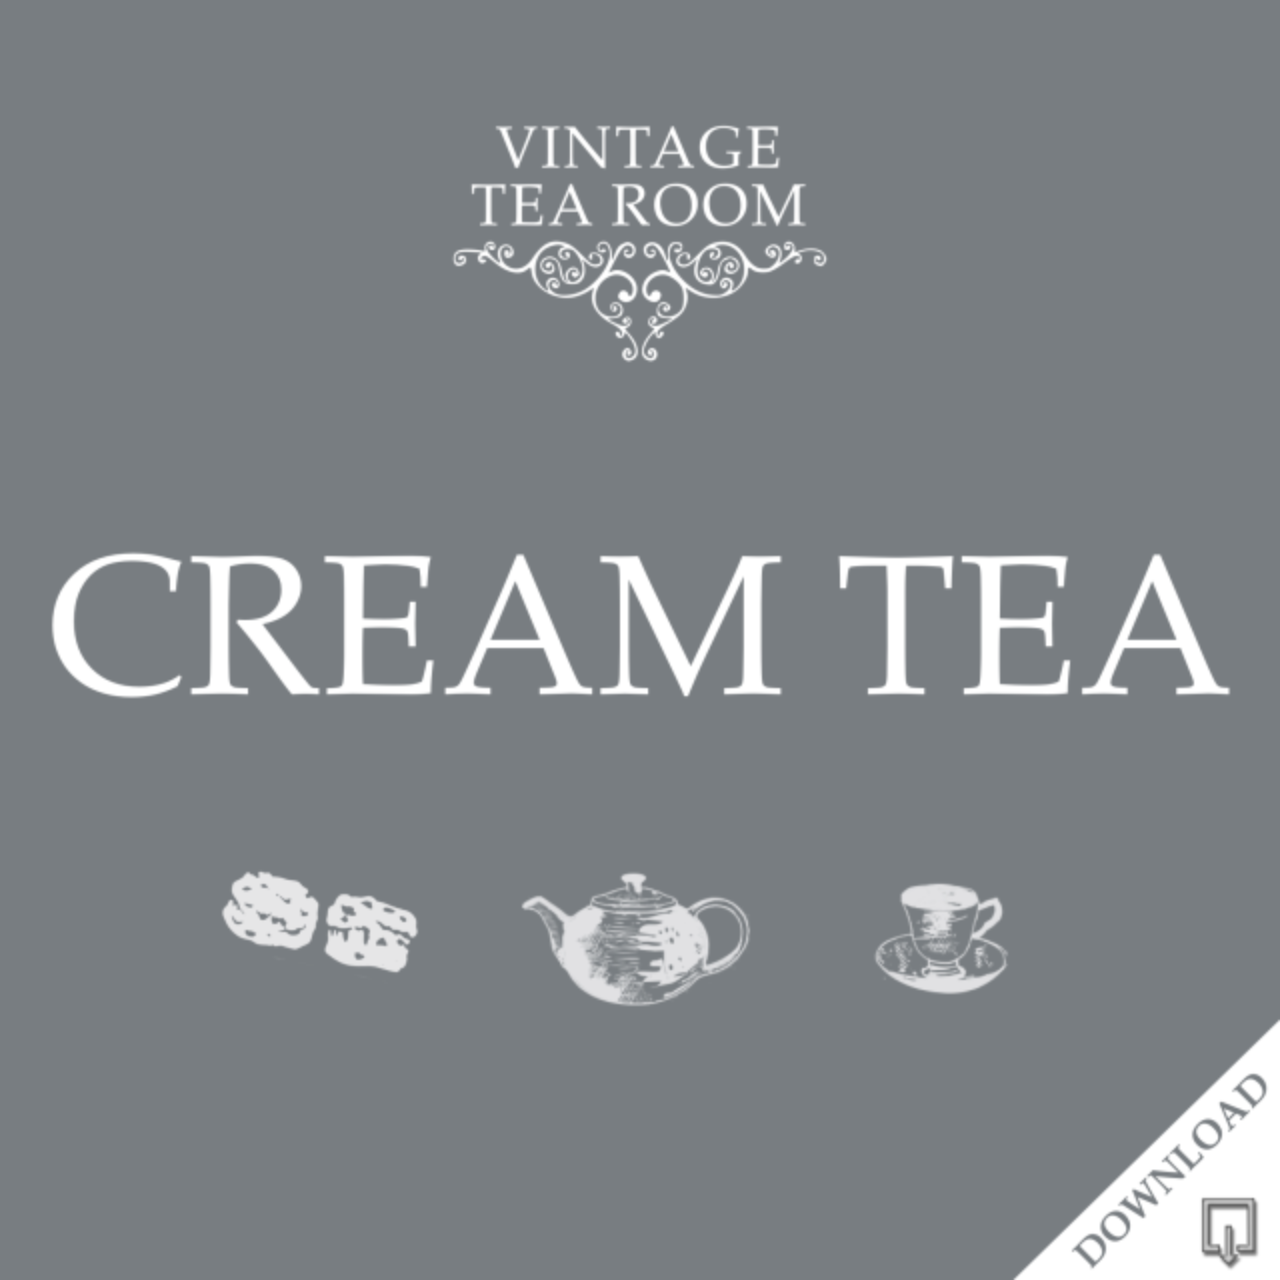 Vintage Cream Tea For Four - Downloadable Voucher